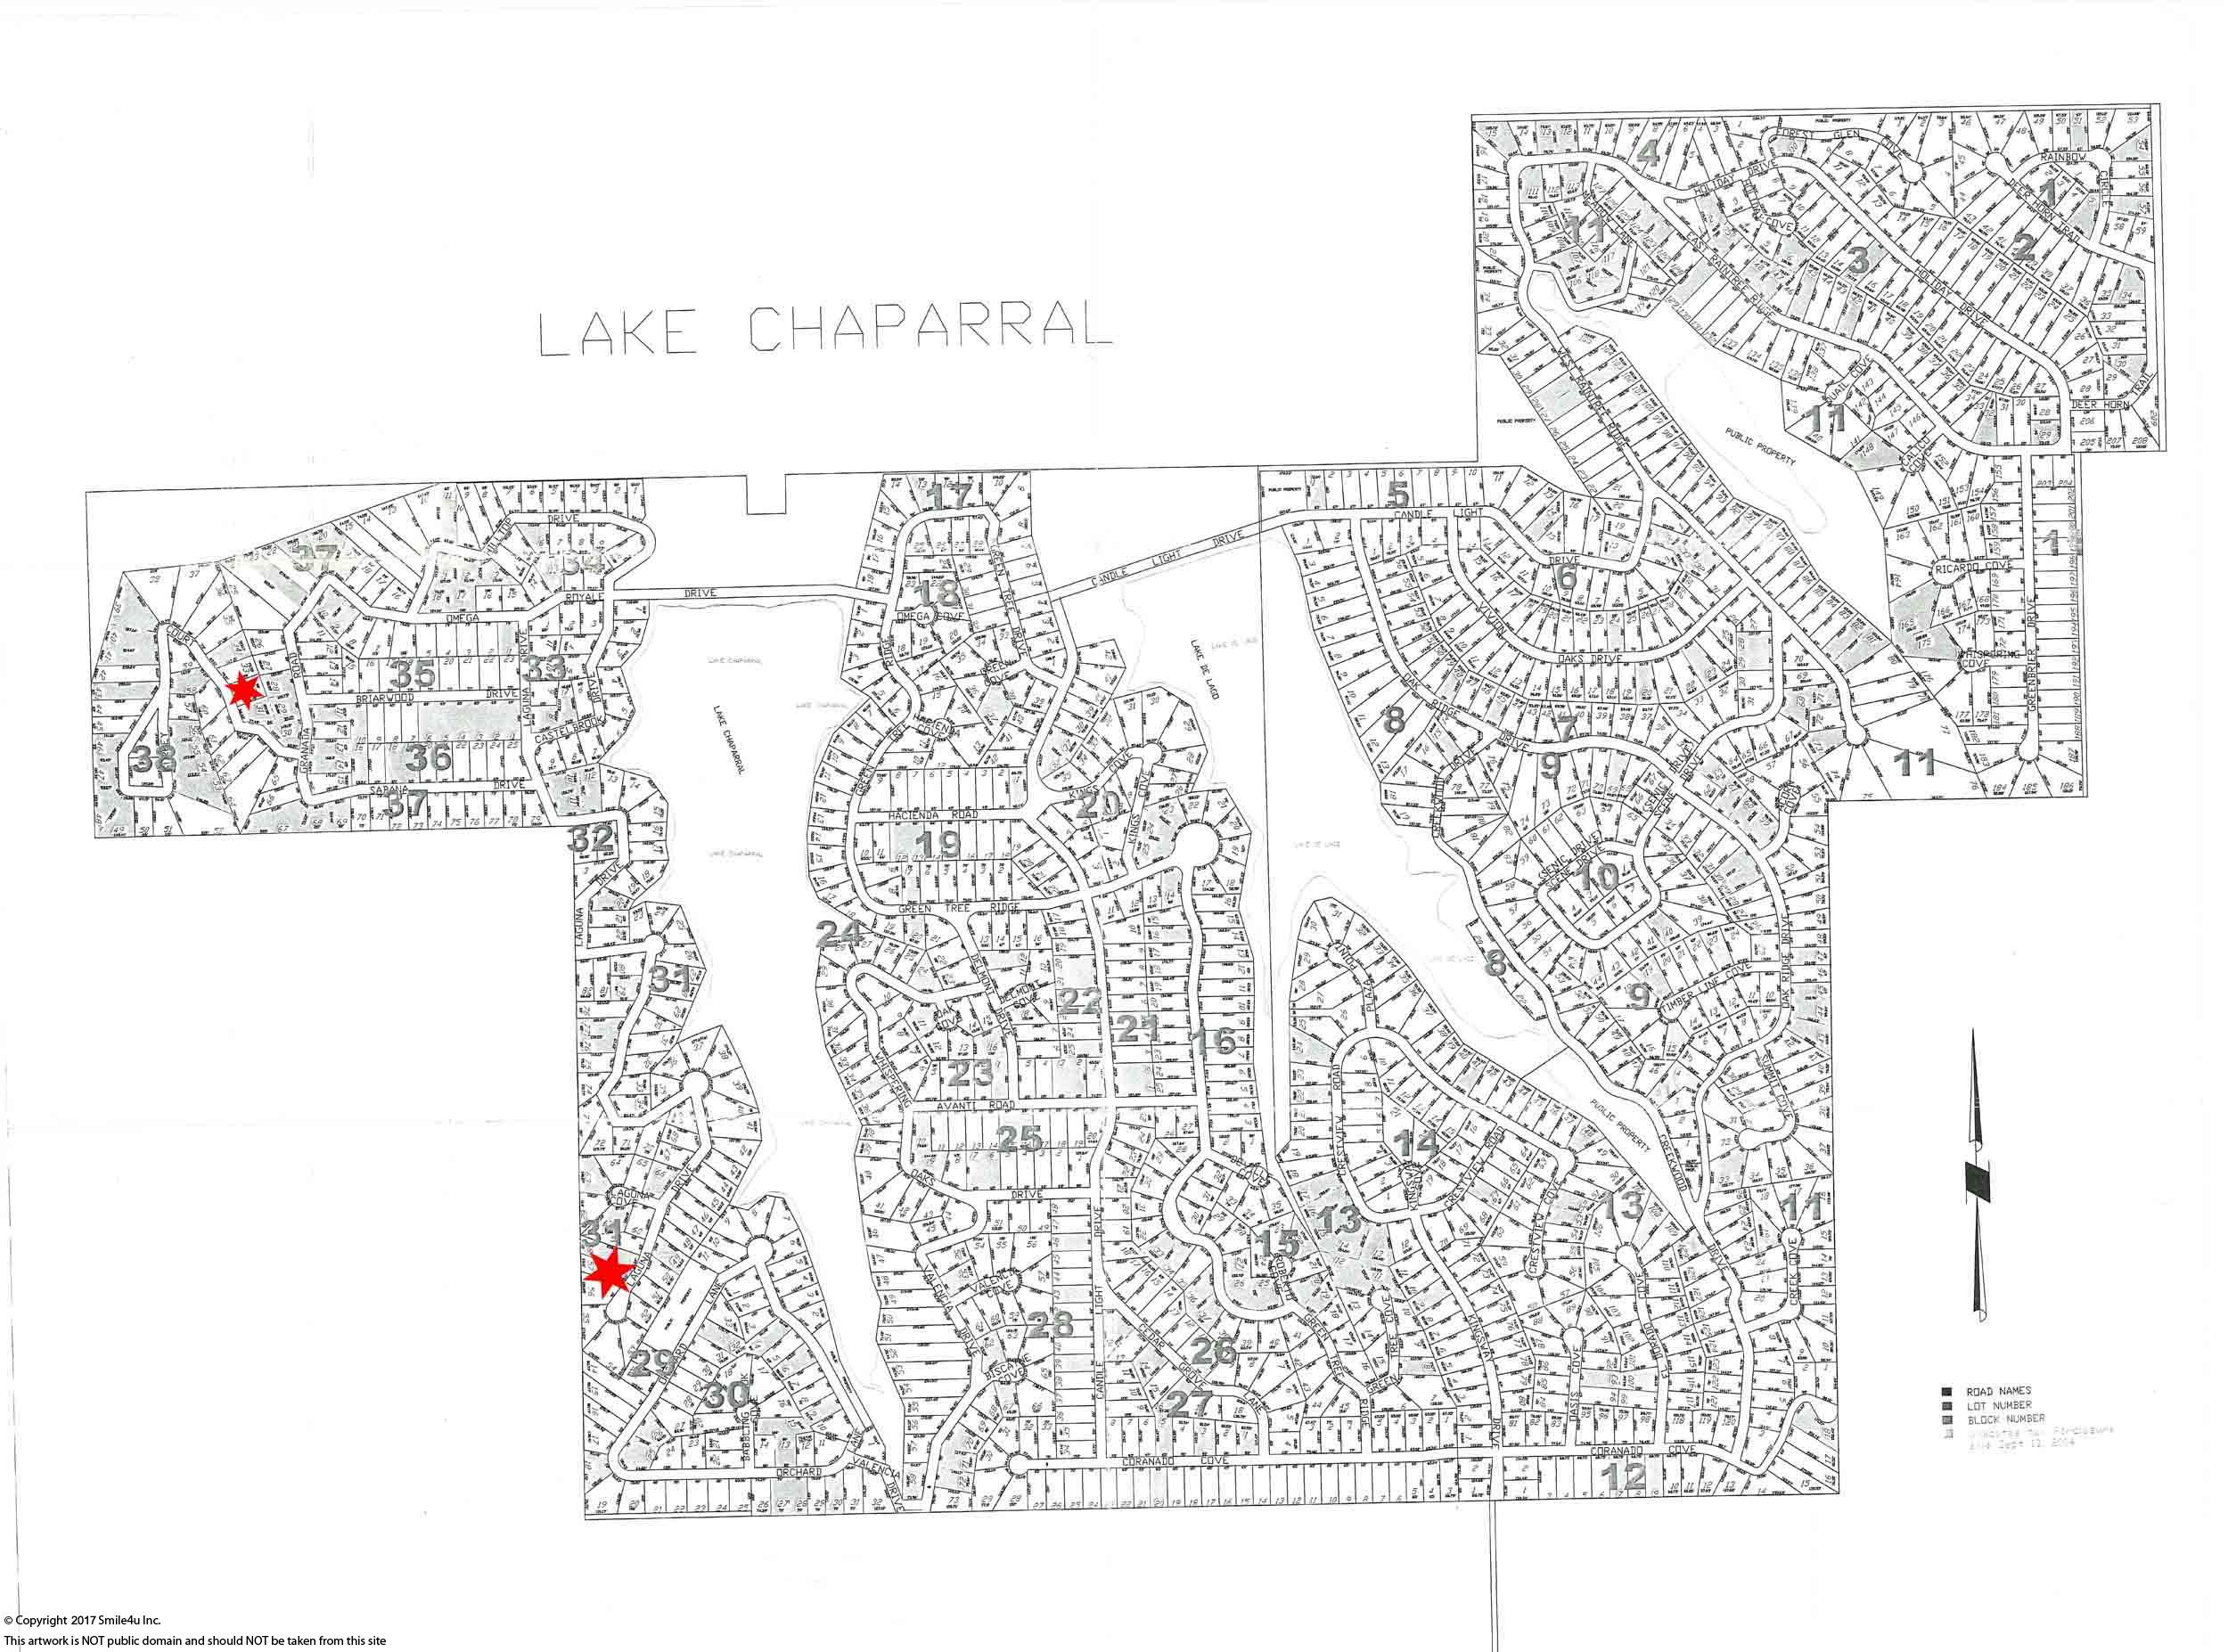 751699_watermarked_lake chaparral full subdivision map.jpg